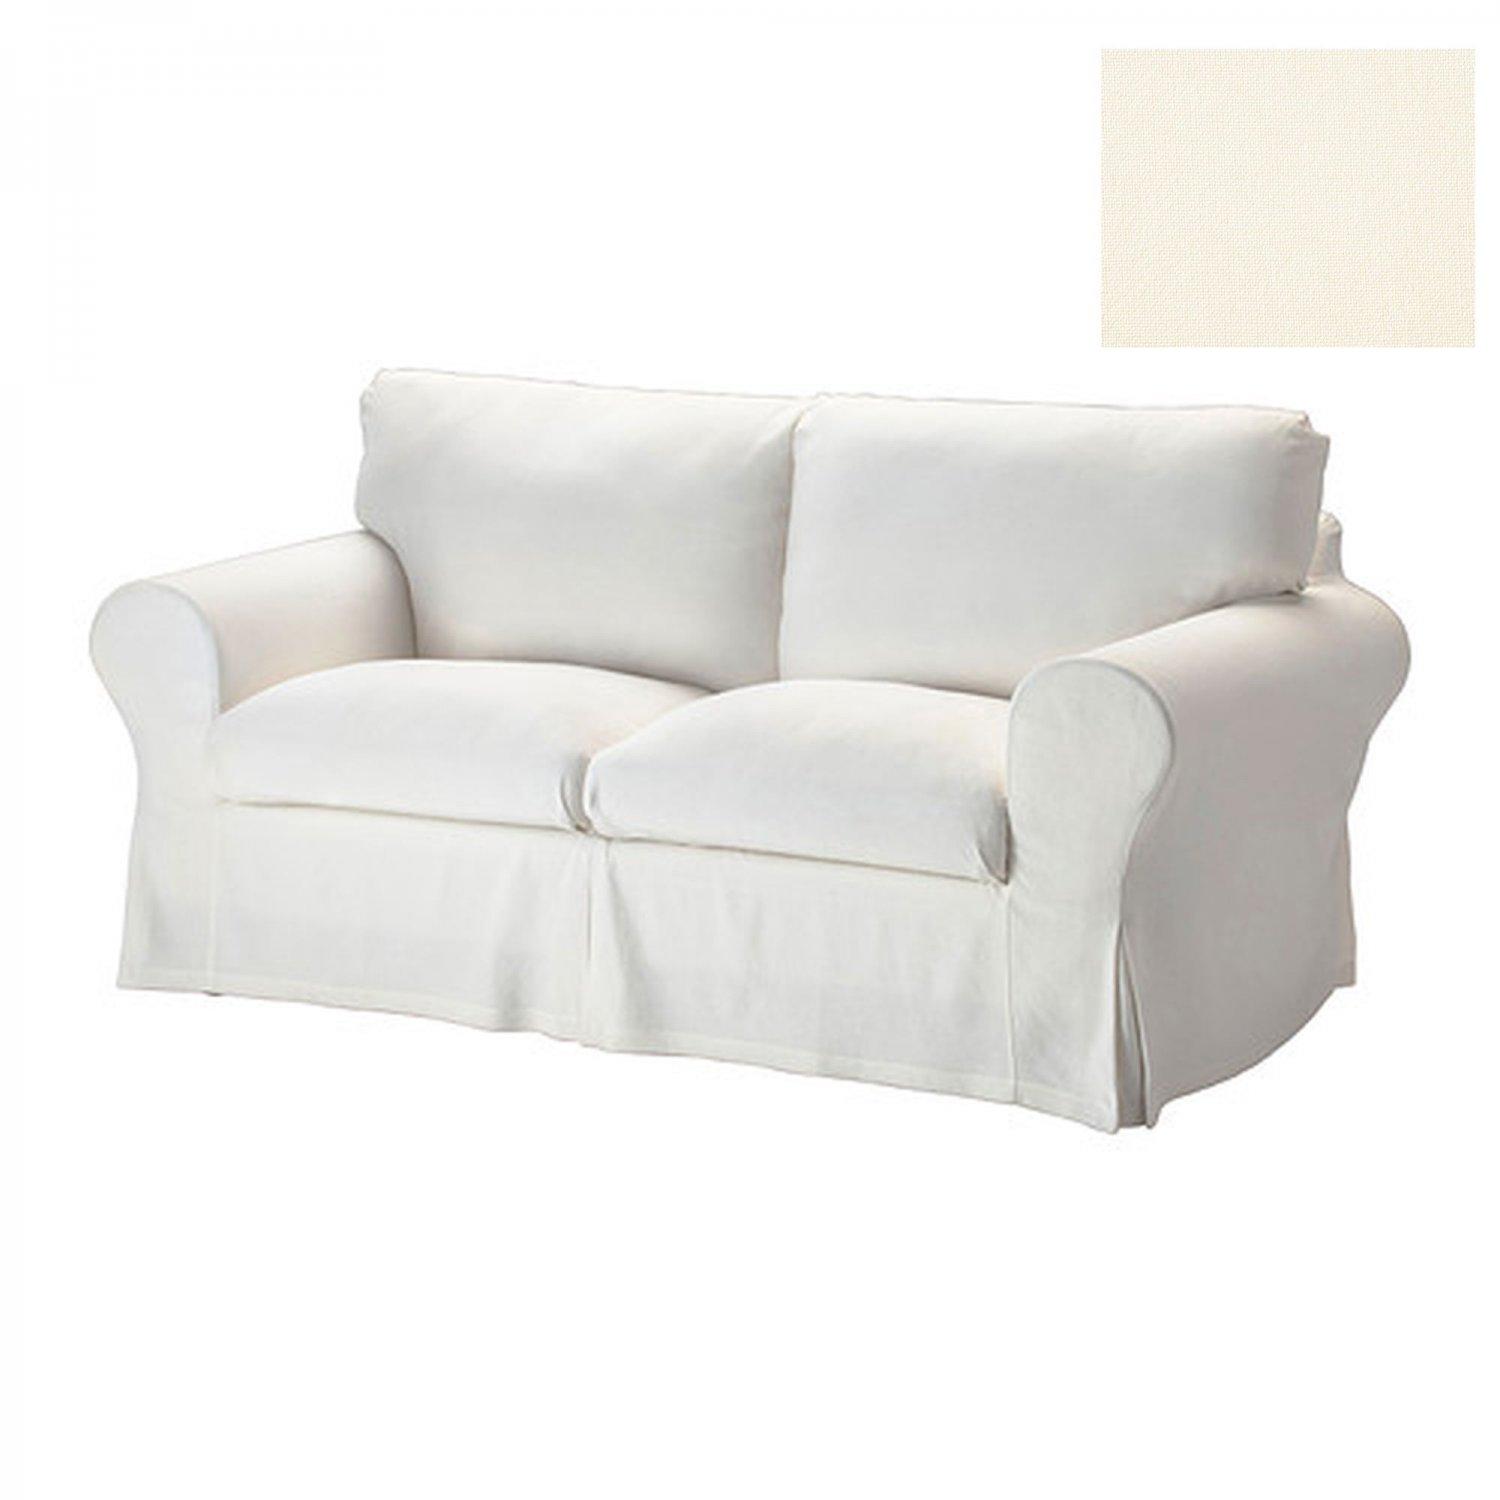 Ikea ektorp 2 seat sofa slipcover loveseat cover stenasa white off white sten sa linen blend Cover for loveseat